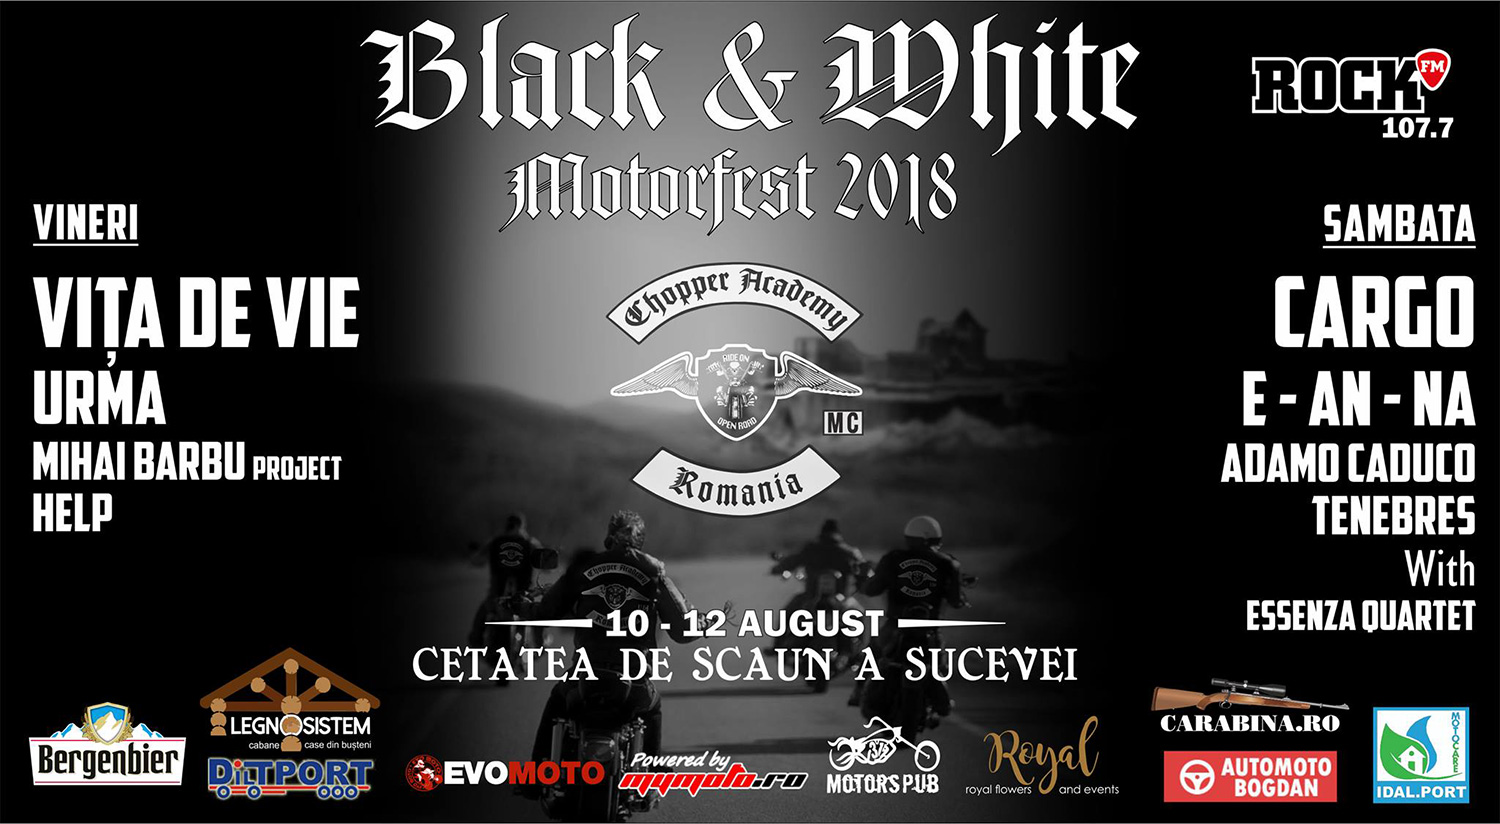 Black & White Motorfest